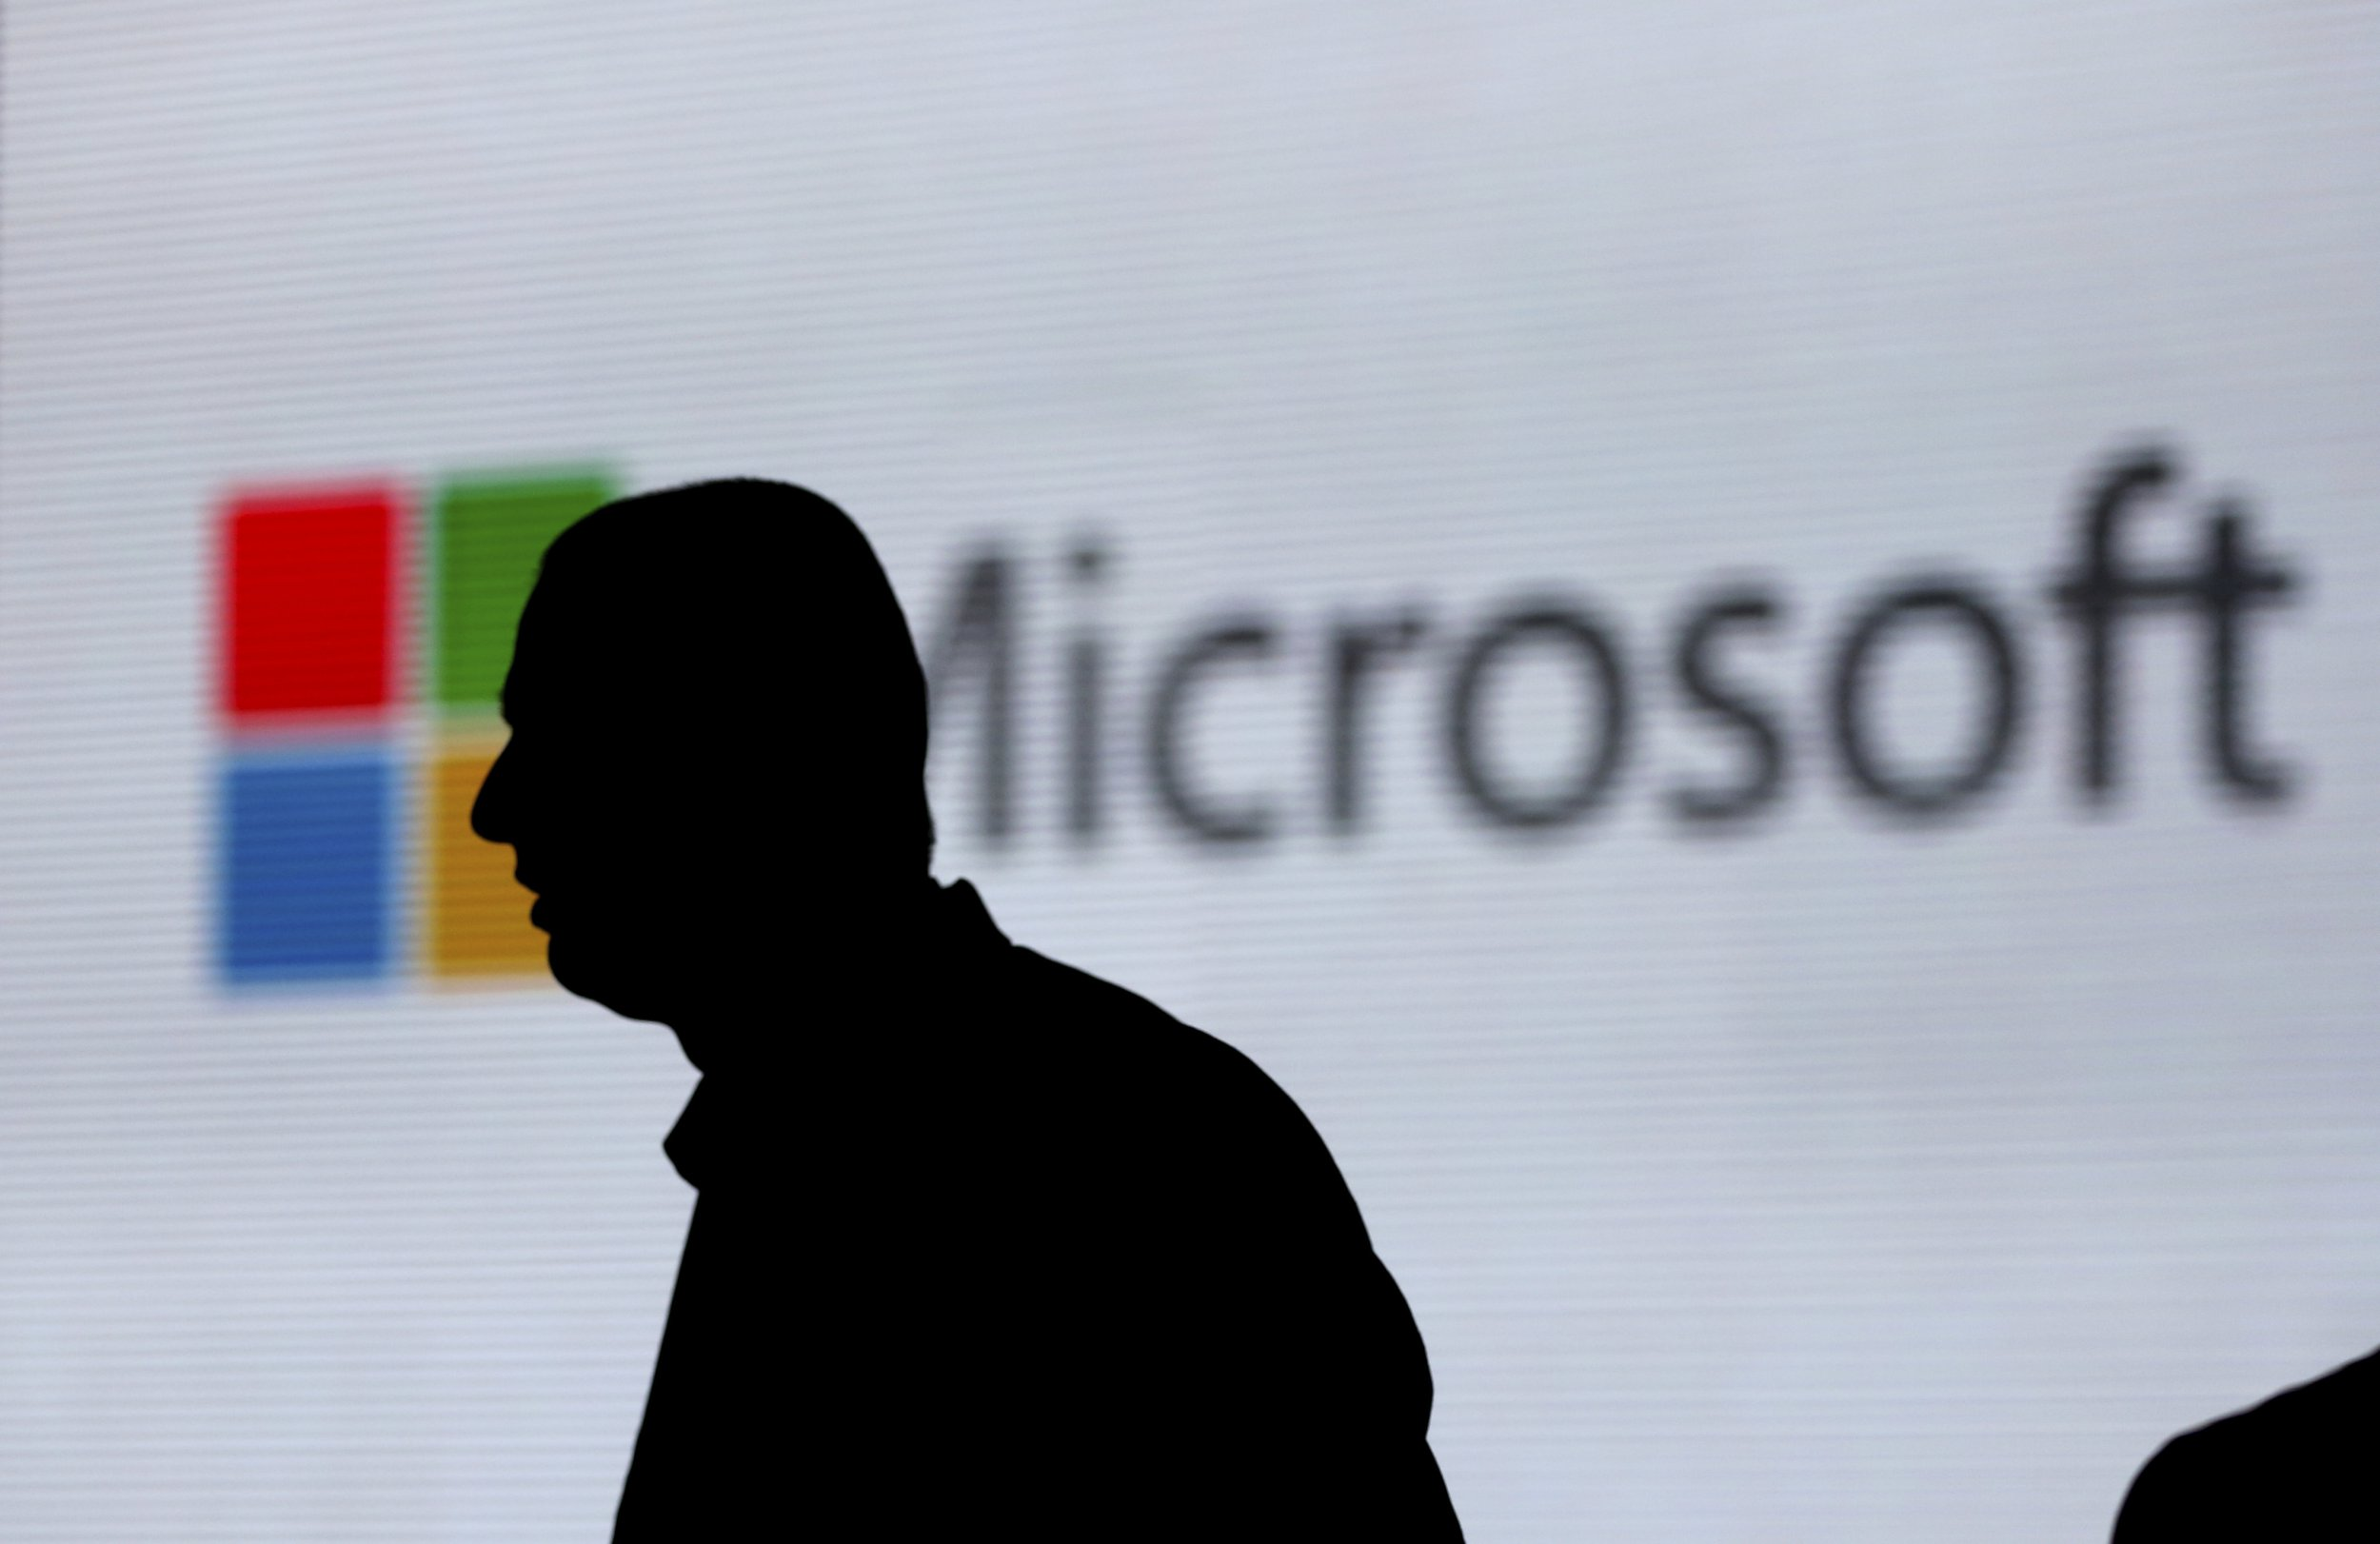 FILE - In this Nov. 7, 2017, file photo, an unidentified man is silhouetted as he walks in front of Microsoft logo at an event in New Delhi, India. Microsoft says it's committing to giving users worldwide the same data and privacy rights being offered to Europeans under new regulations there. That means no matter where you live, you'll be able to see what Microsoft collects about you and correct or delete that information if necessary. (AP Photo/Altaf Qadri, File)